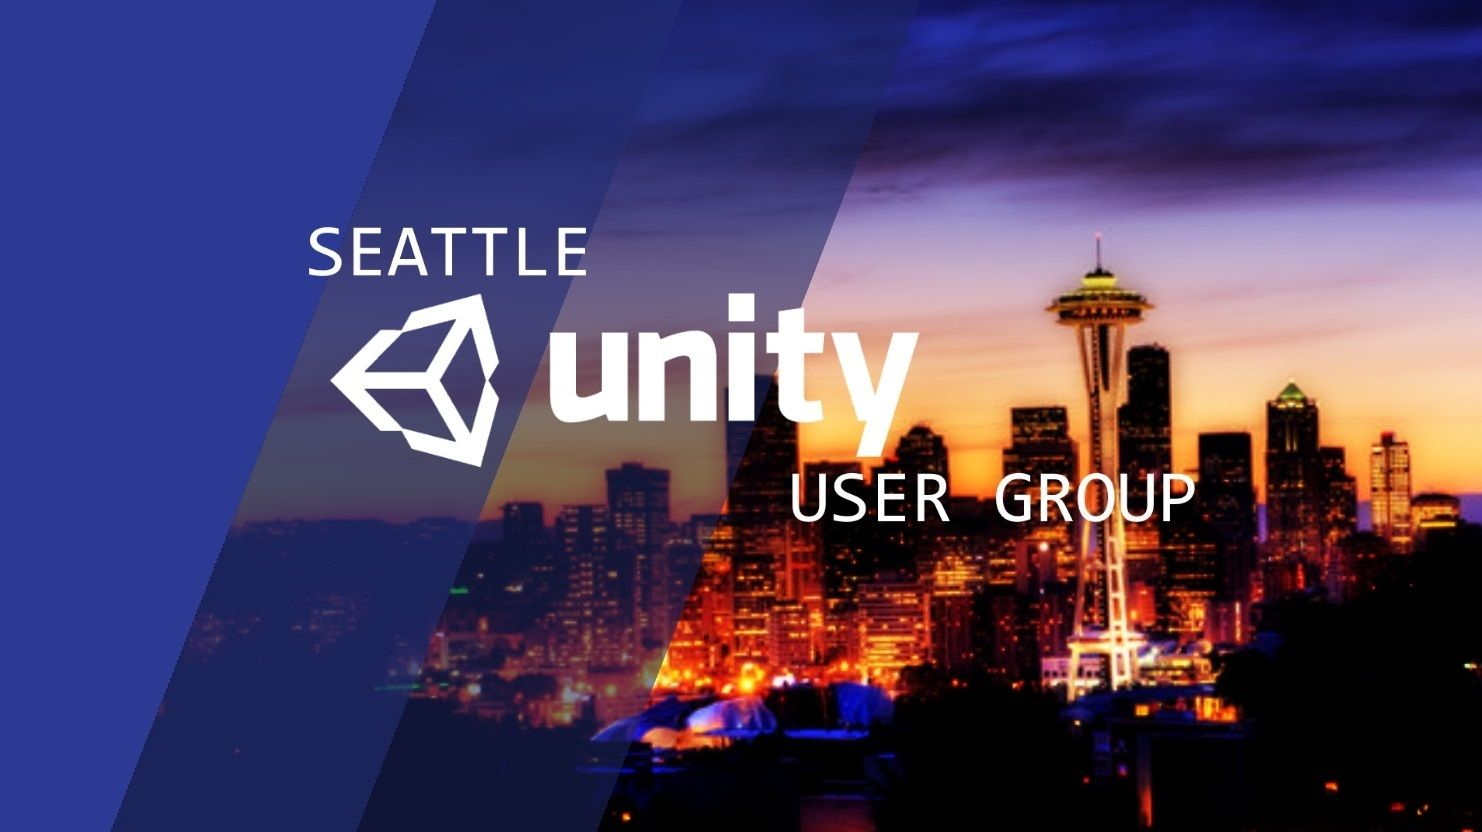 Seattle Unity User Group